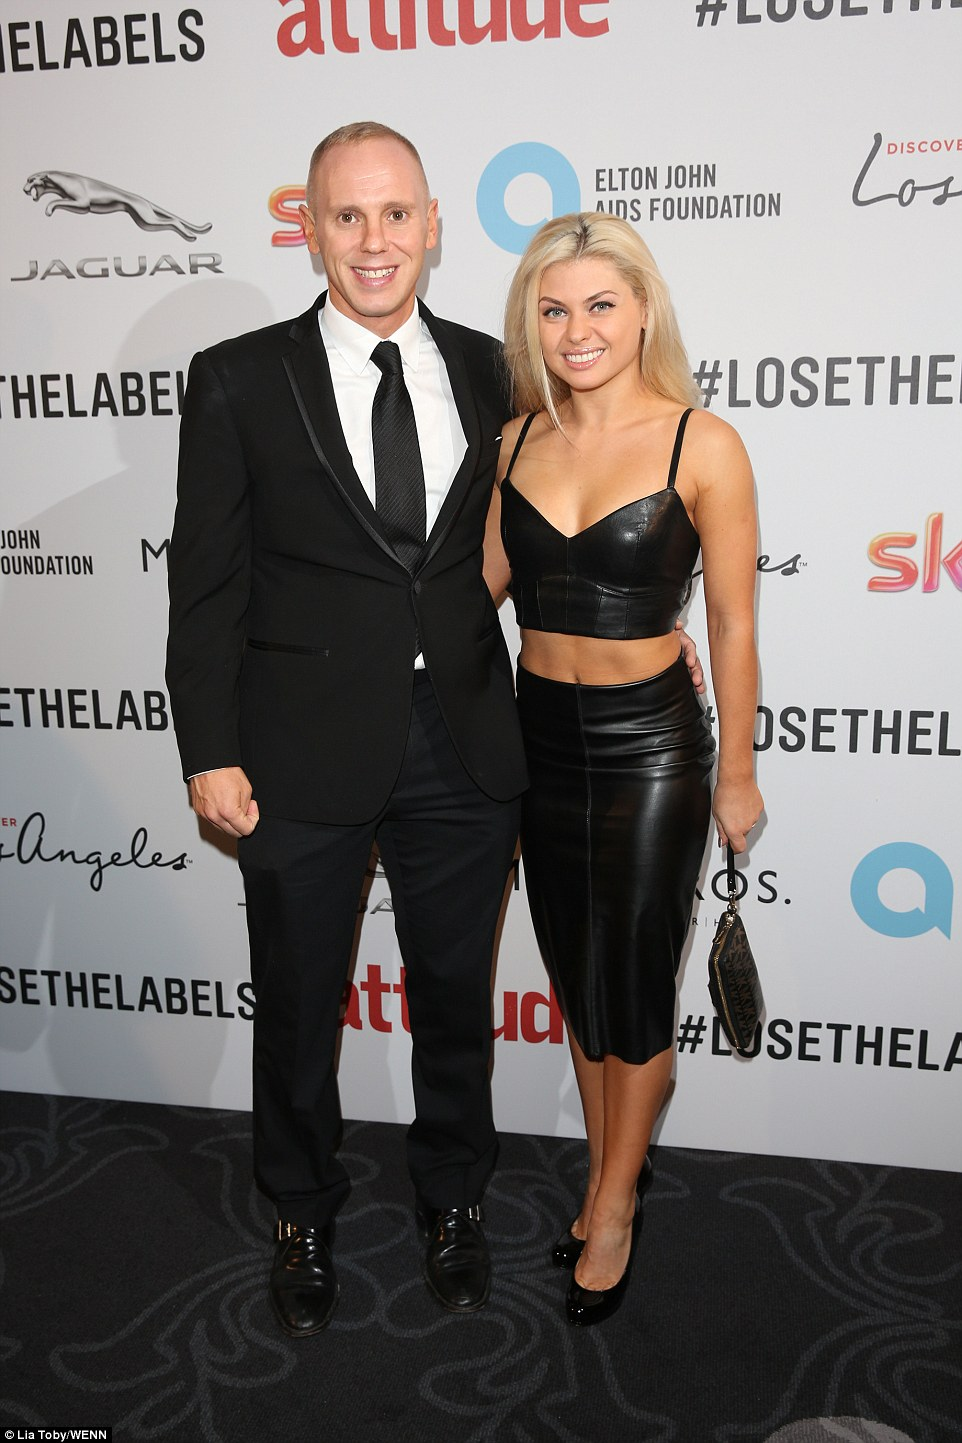 Dance with me: Strictly star Judge Rinder was spotted on the carpet with his professional dancing partner Oksana Platero, who wowed in a stunning black leather skirt and bralet combination which showed off every inch of her physique